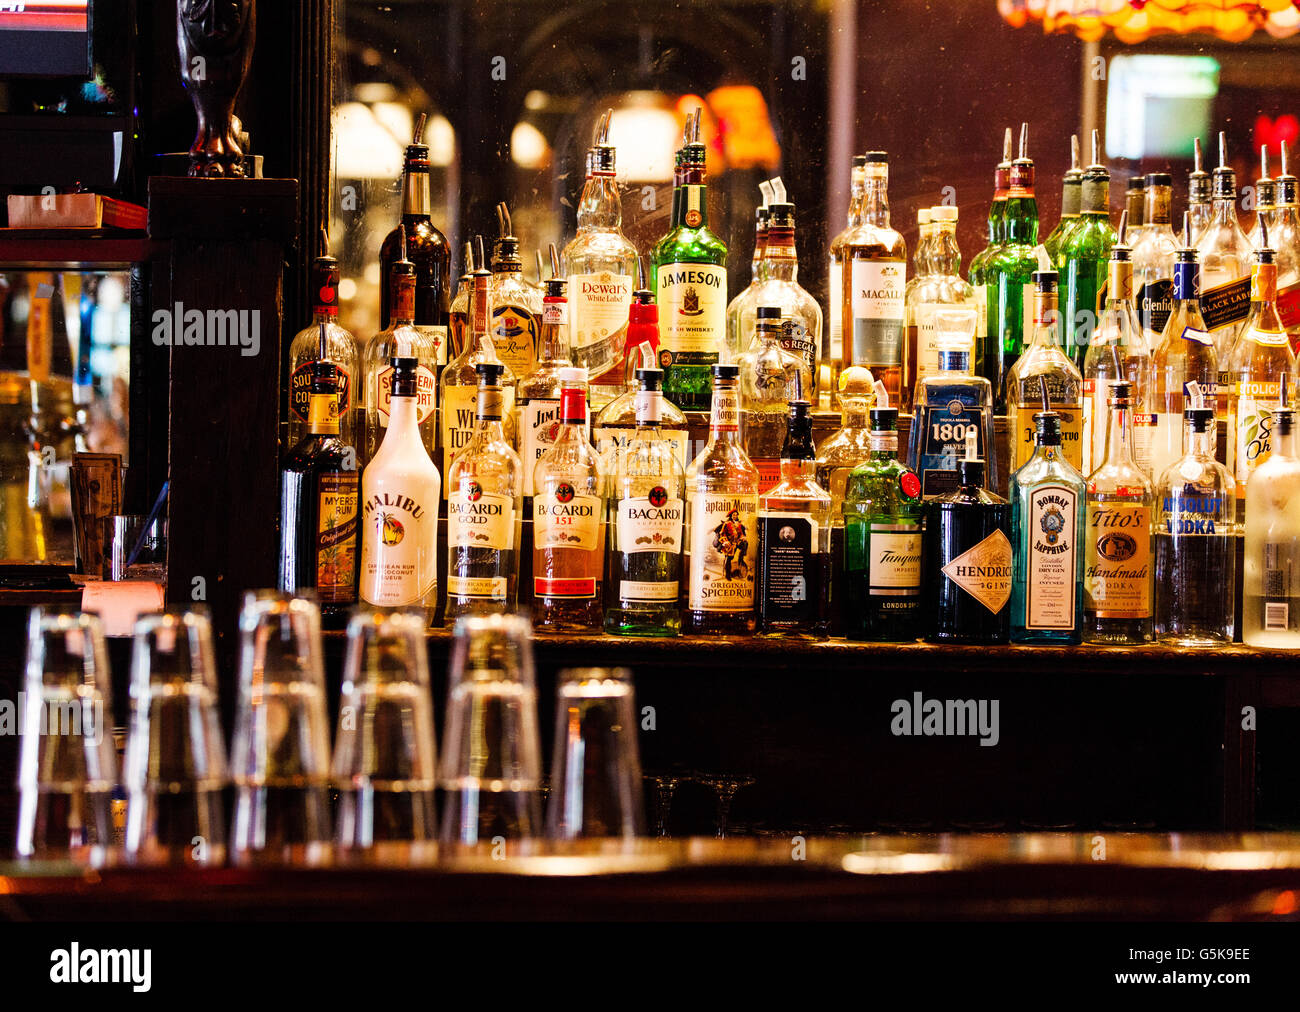 A collection of assorted, alcoholic, branded spirit or liquor bottles, displayed on a shelf at the back of a public - Stock Image